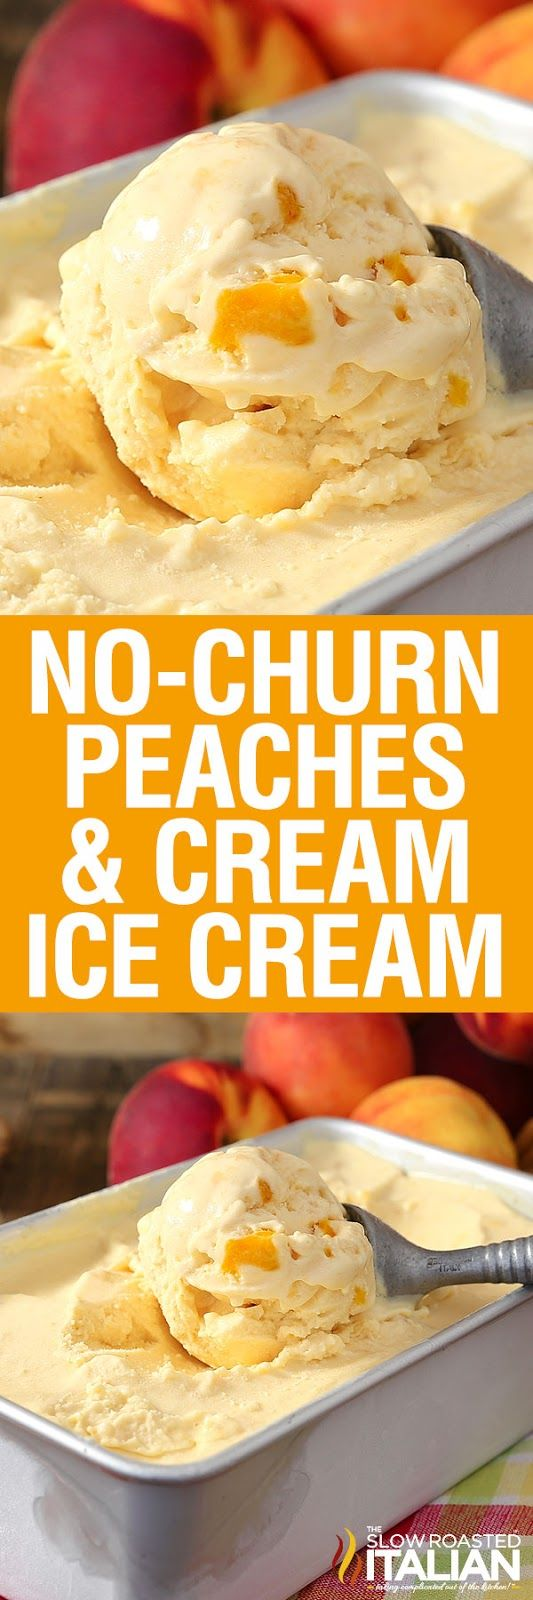 No-Churn 2-Ingredient Peaches & Cream Ice Cream is rich, thick and amazingly delicious. And it does NOT use sweetened condensed milk.